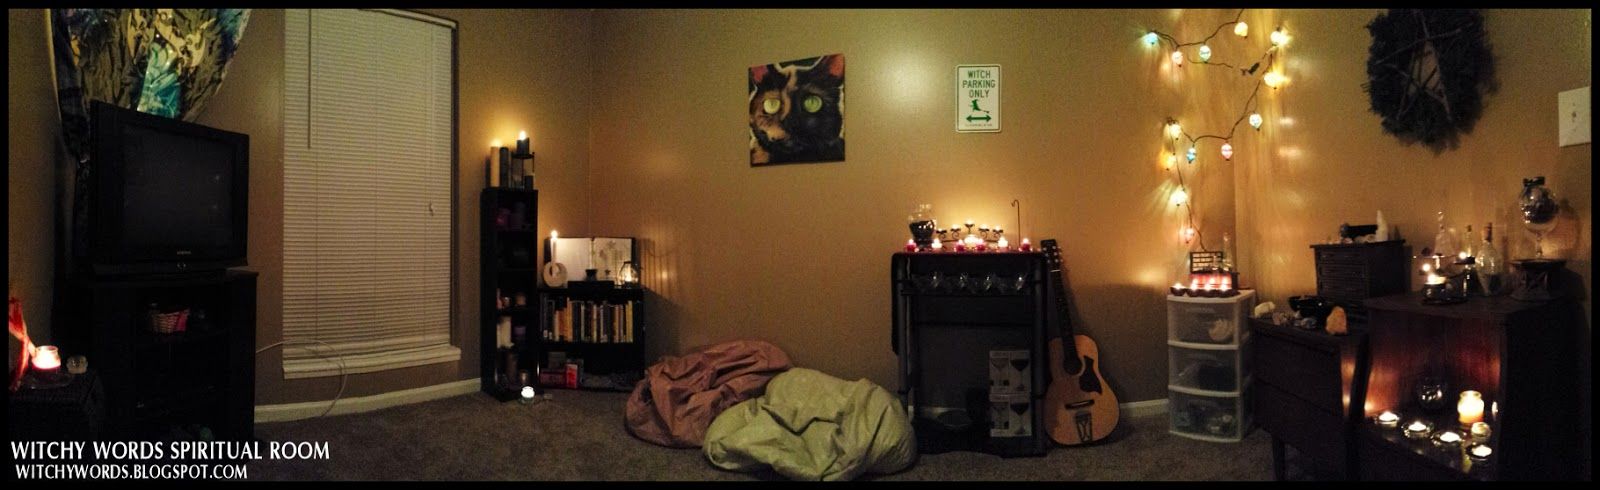 Witchy words my new spiritual room for Spiritual bedroom designs